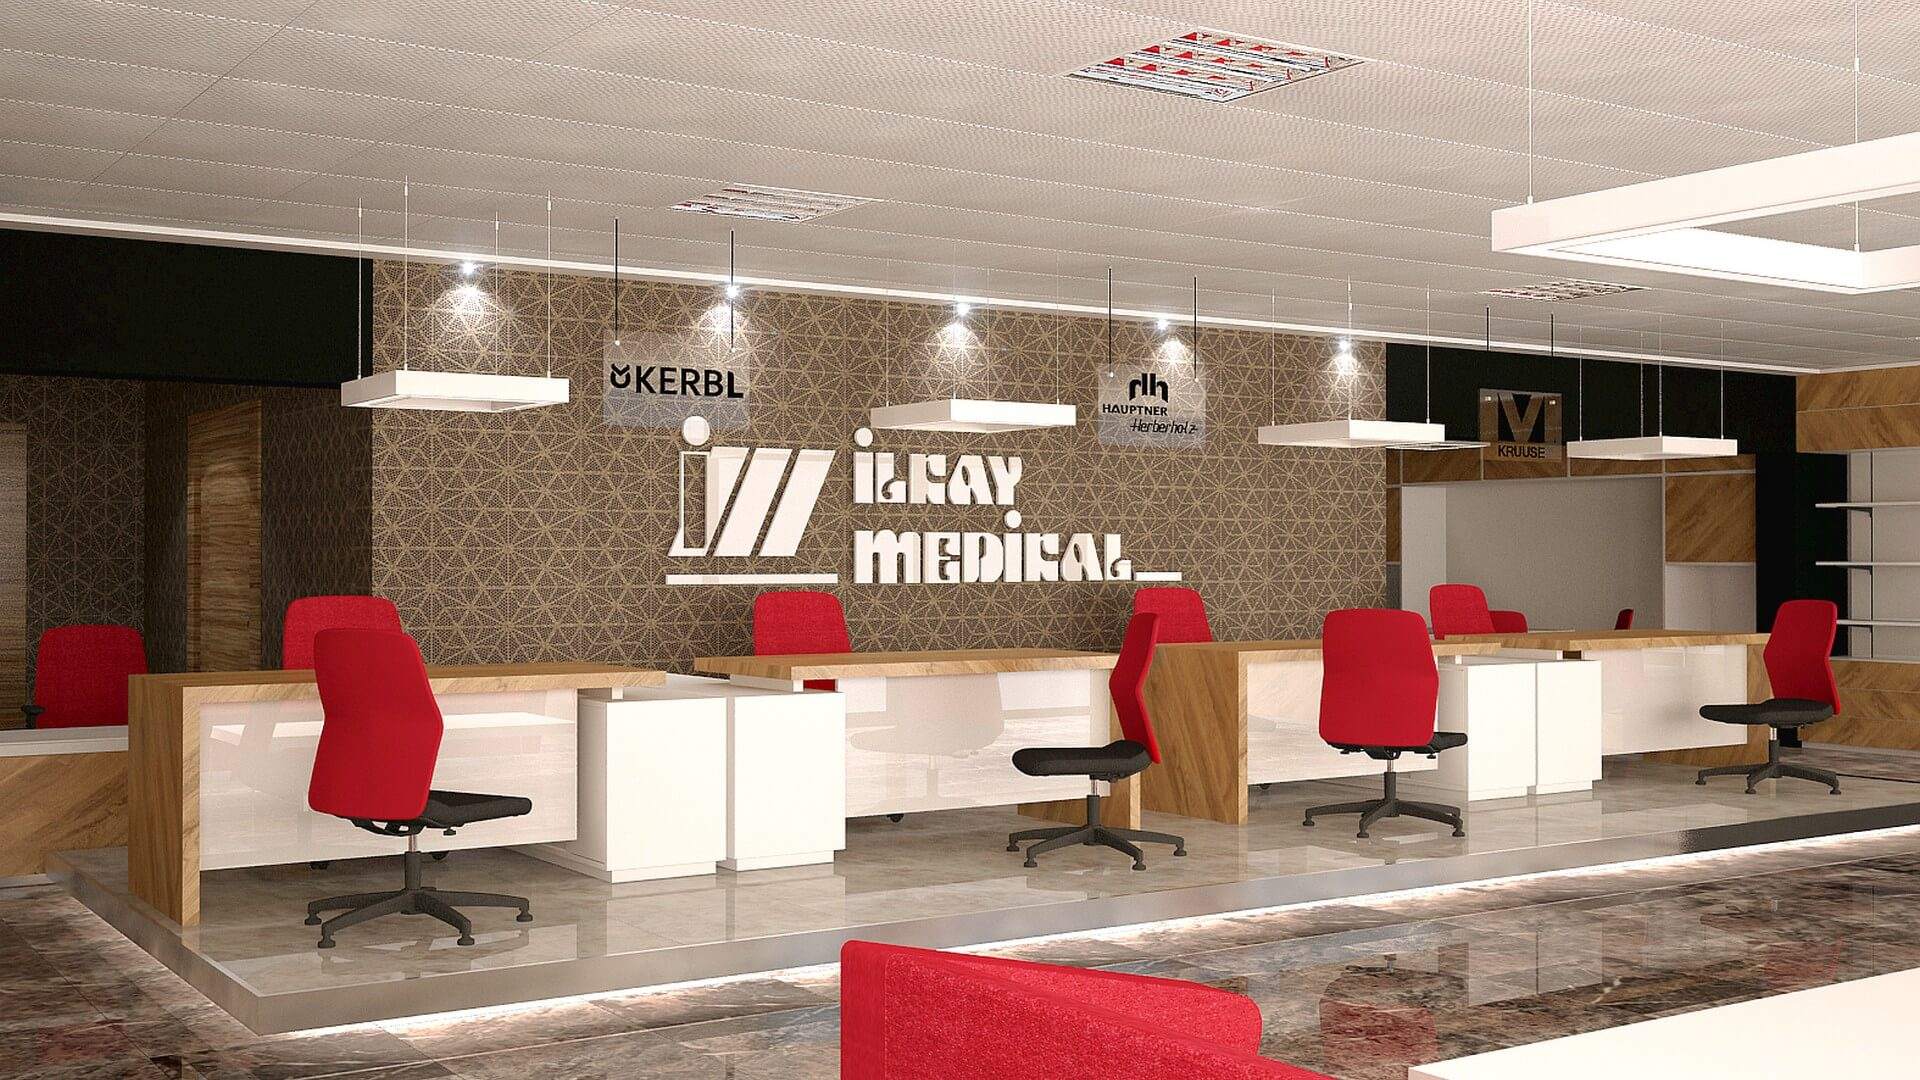 Retail Shop Design Interior Architecture Ilkay Medical Shop